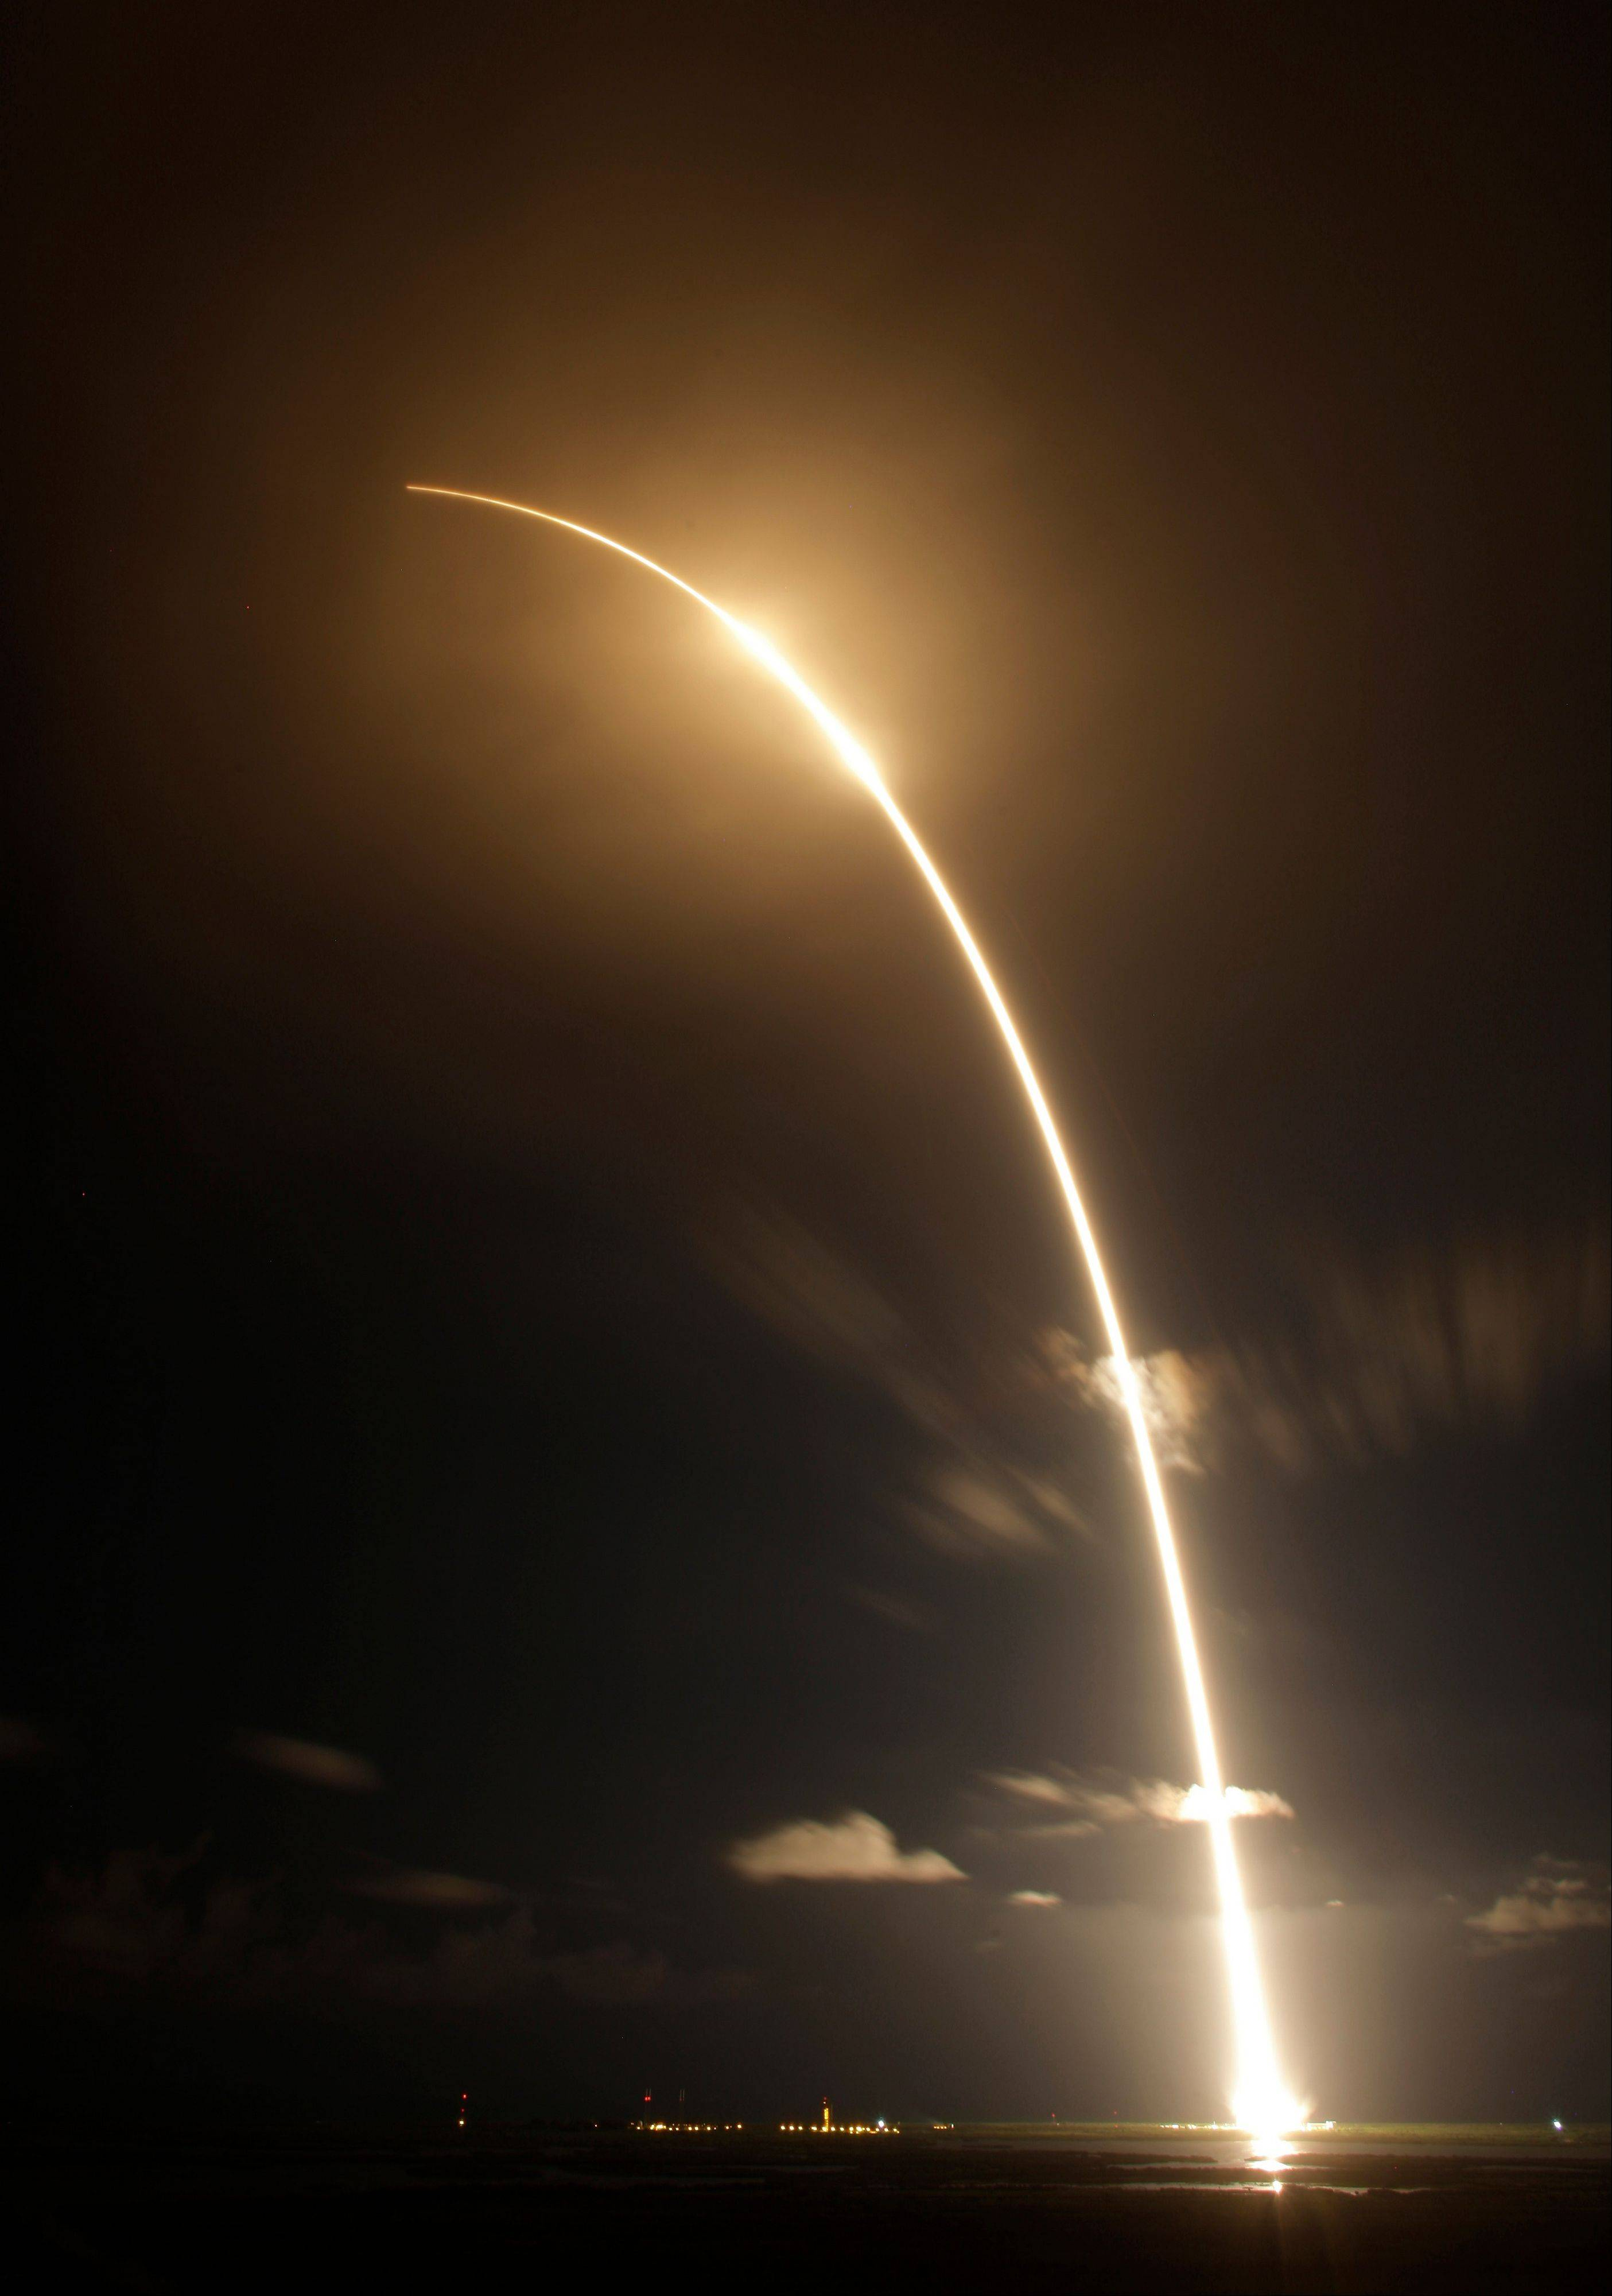 The Falcon 9 SpaceX rocket is shown in a time exposure as it lifts off from space launch complex 40 at the Cape Canaveral Air Force Station in Cape Canaveral, Fla. on Sunday, Oct. 7, 2012. The rocket is carrying supplies to the International Space Station.